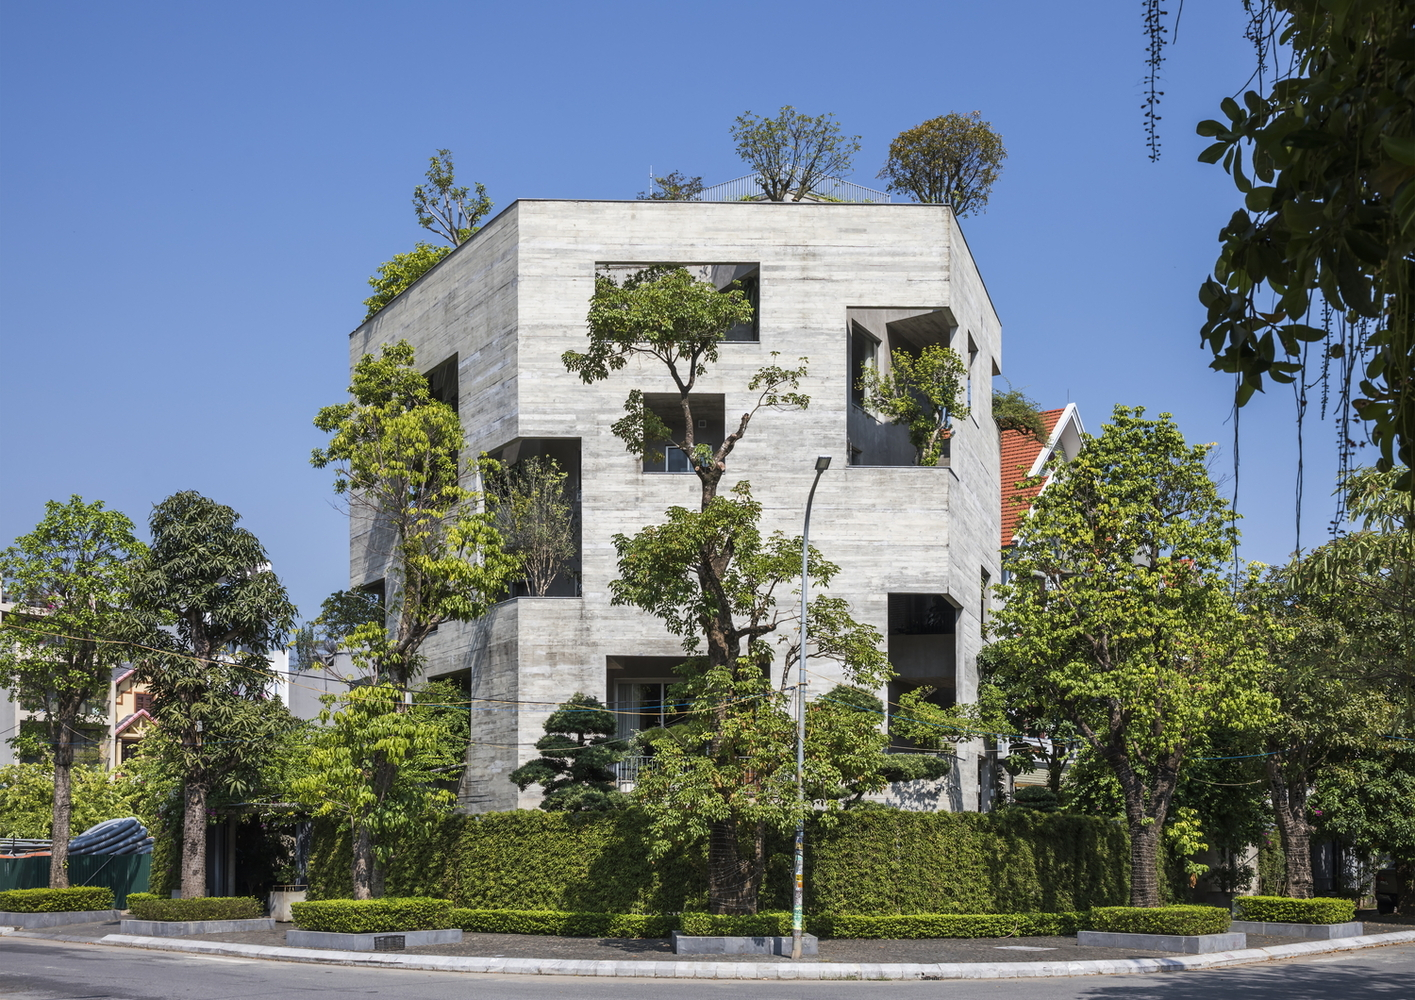 House featuring trees growing out of balconies.